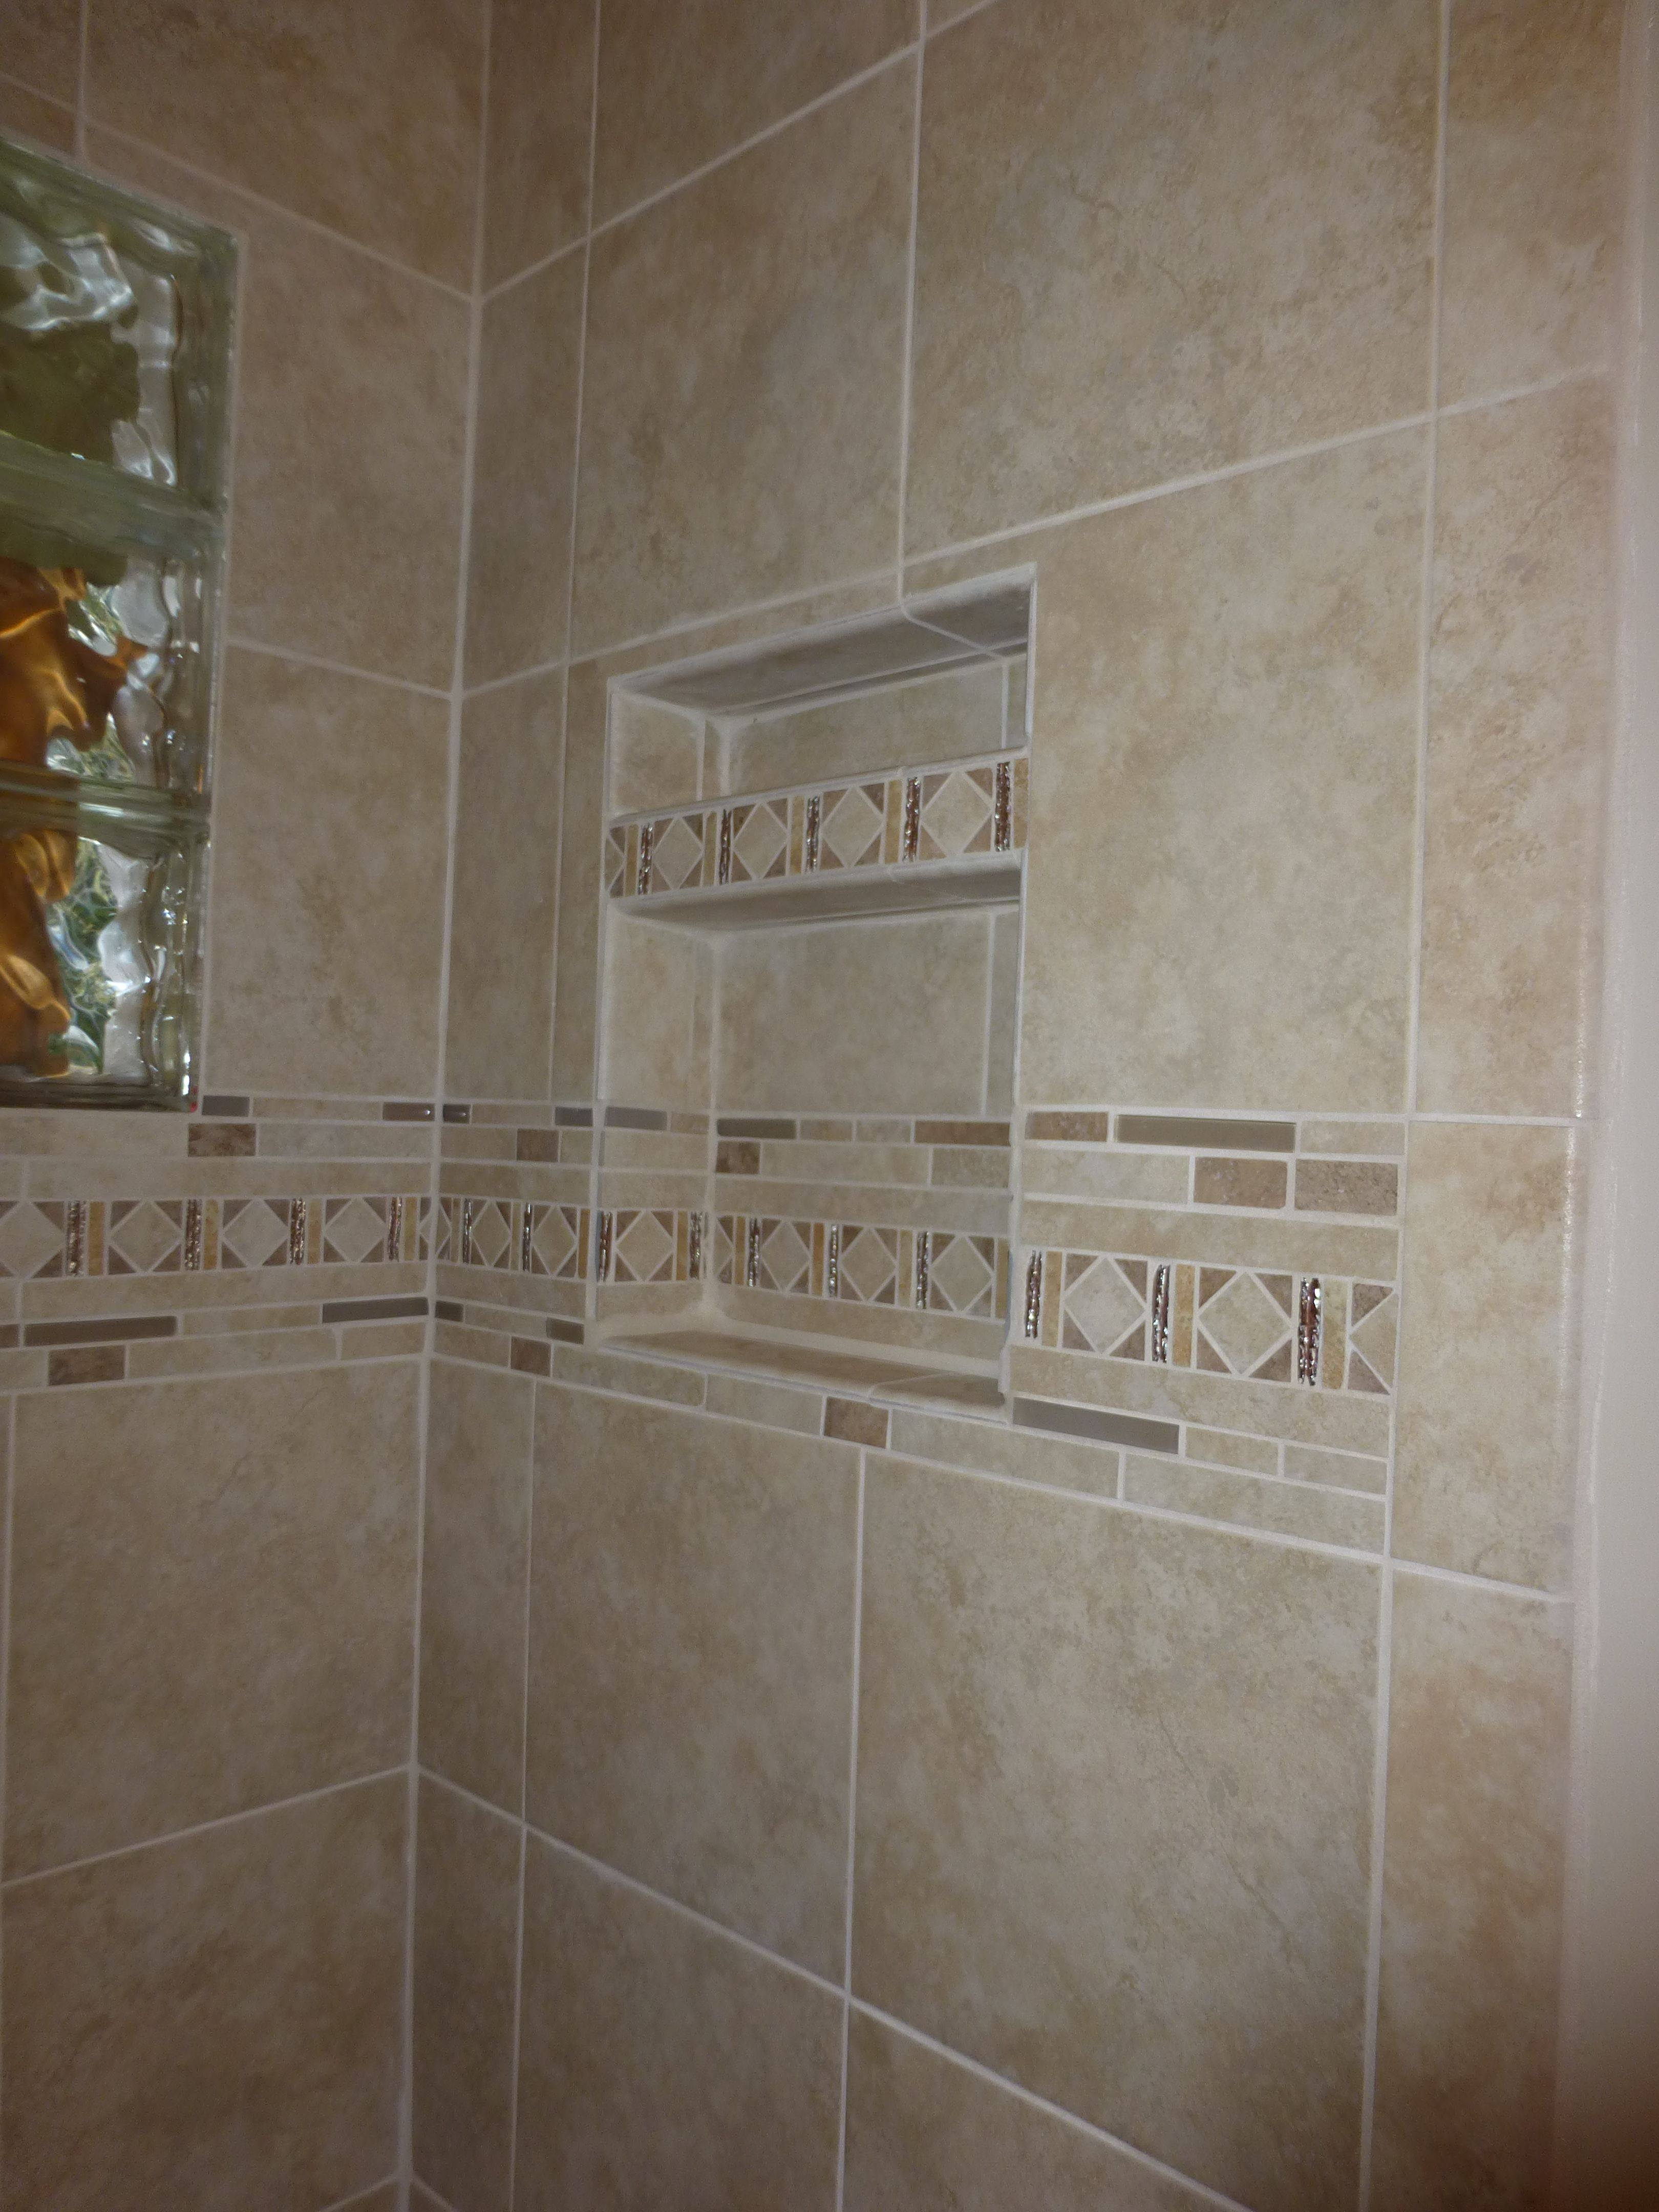 Capri Clic Tile From Lowes With